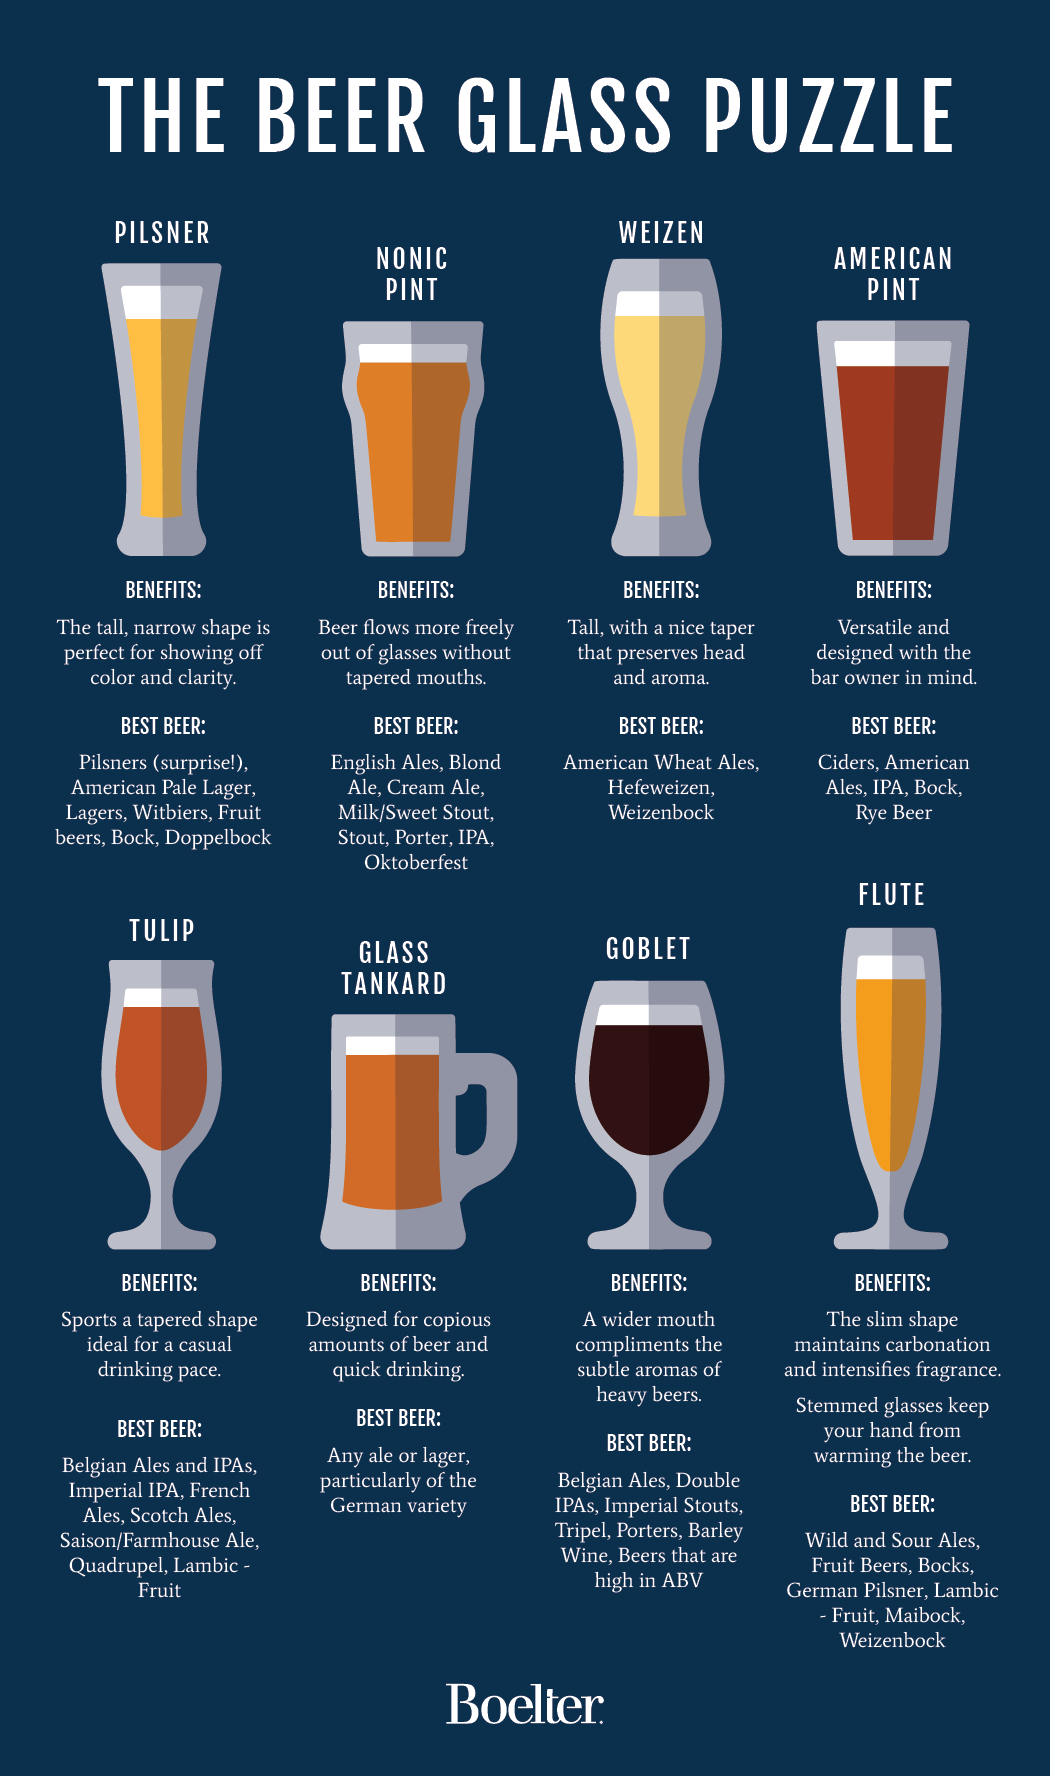 Which beer glass should you pair with each style of beer?